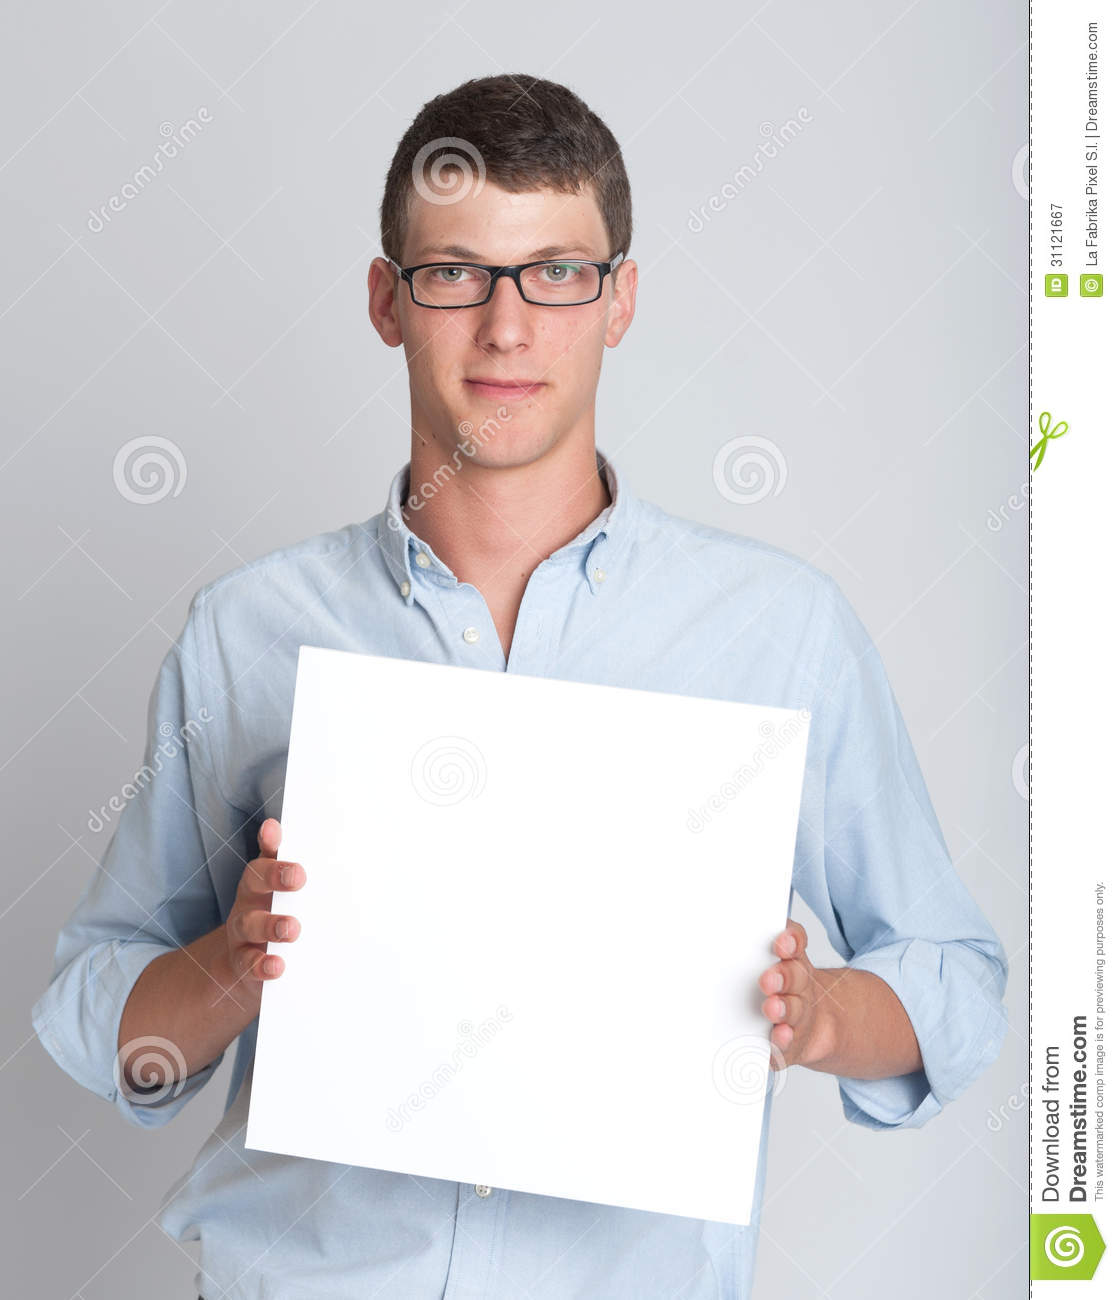 Young Man Holding A Blank Sign Royalty Free Stock